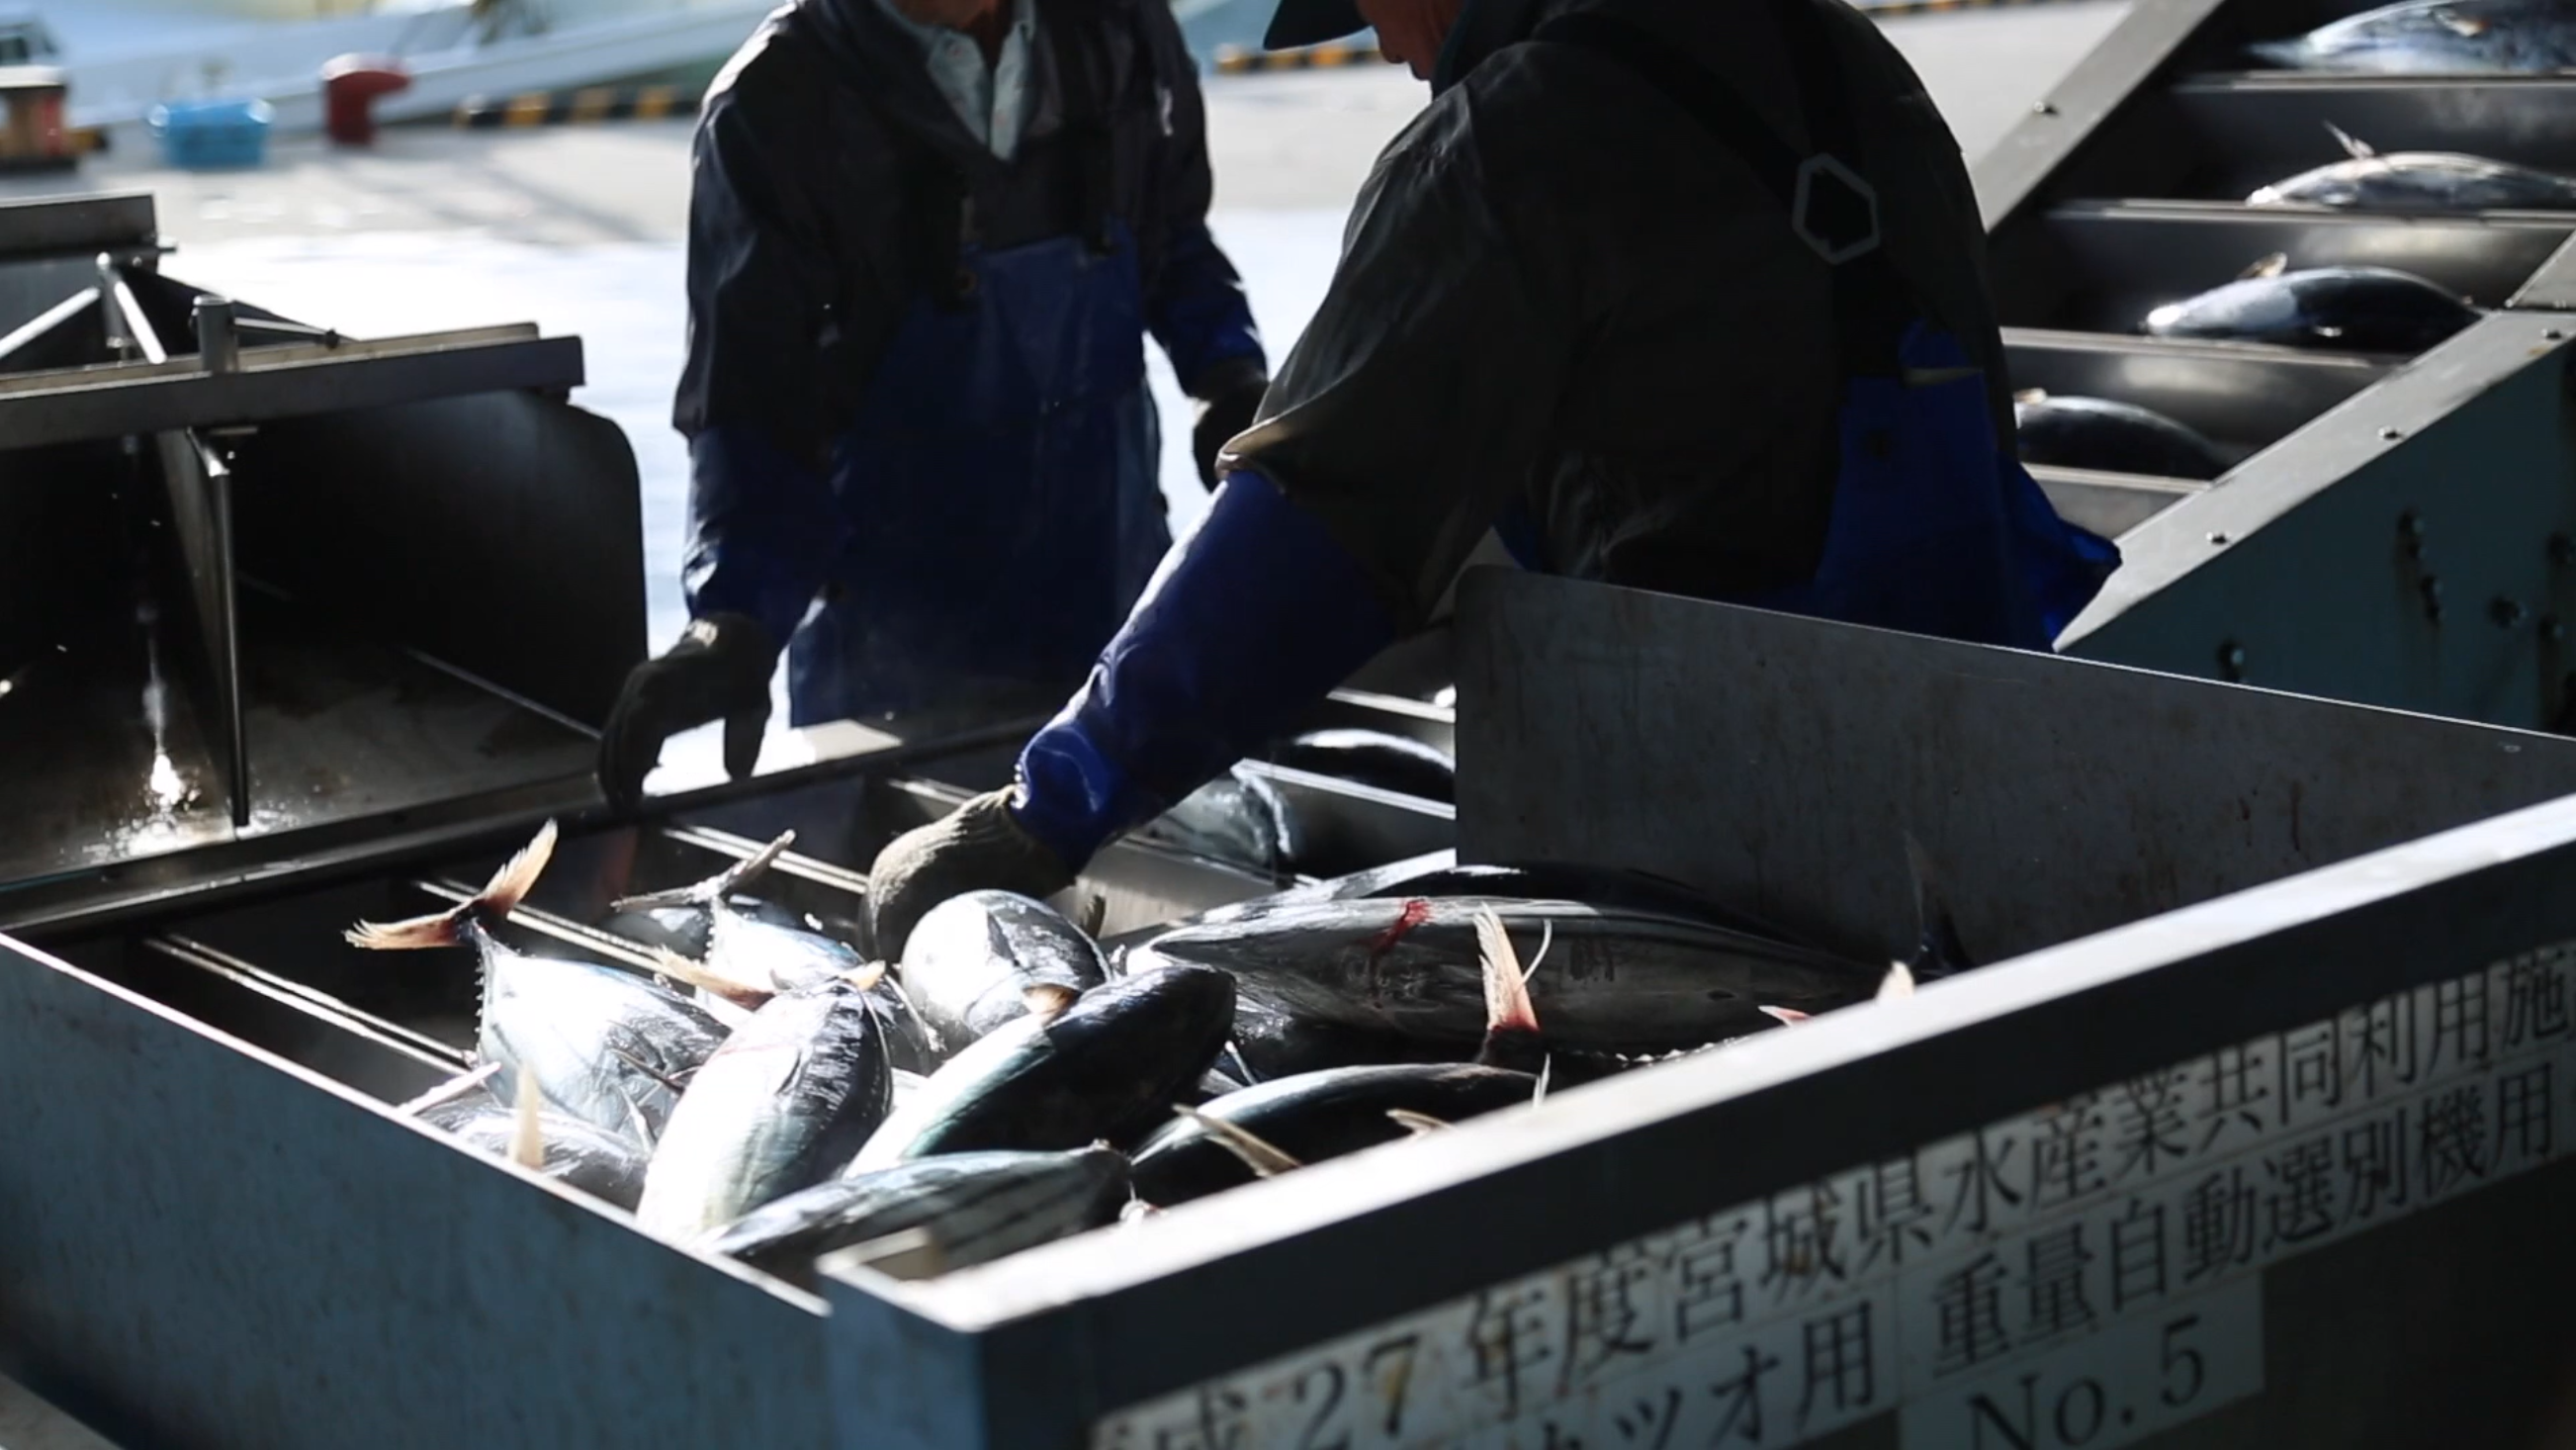 Picture of skipjack tuna being loaded into a sorting machine by three men at the fish market